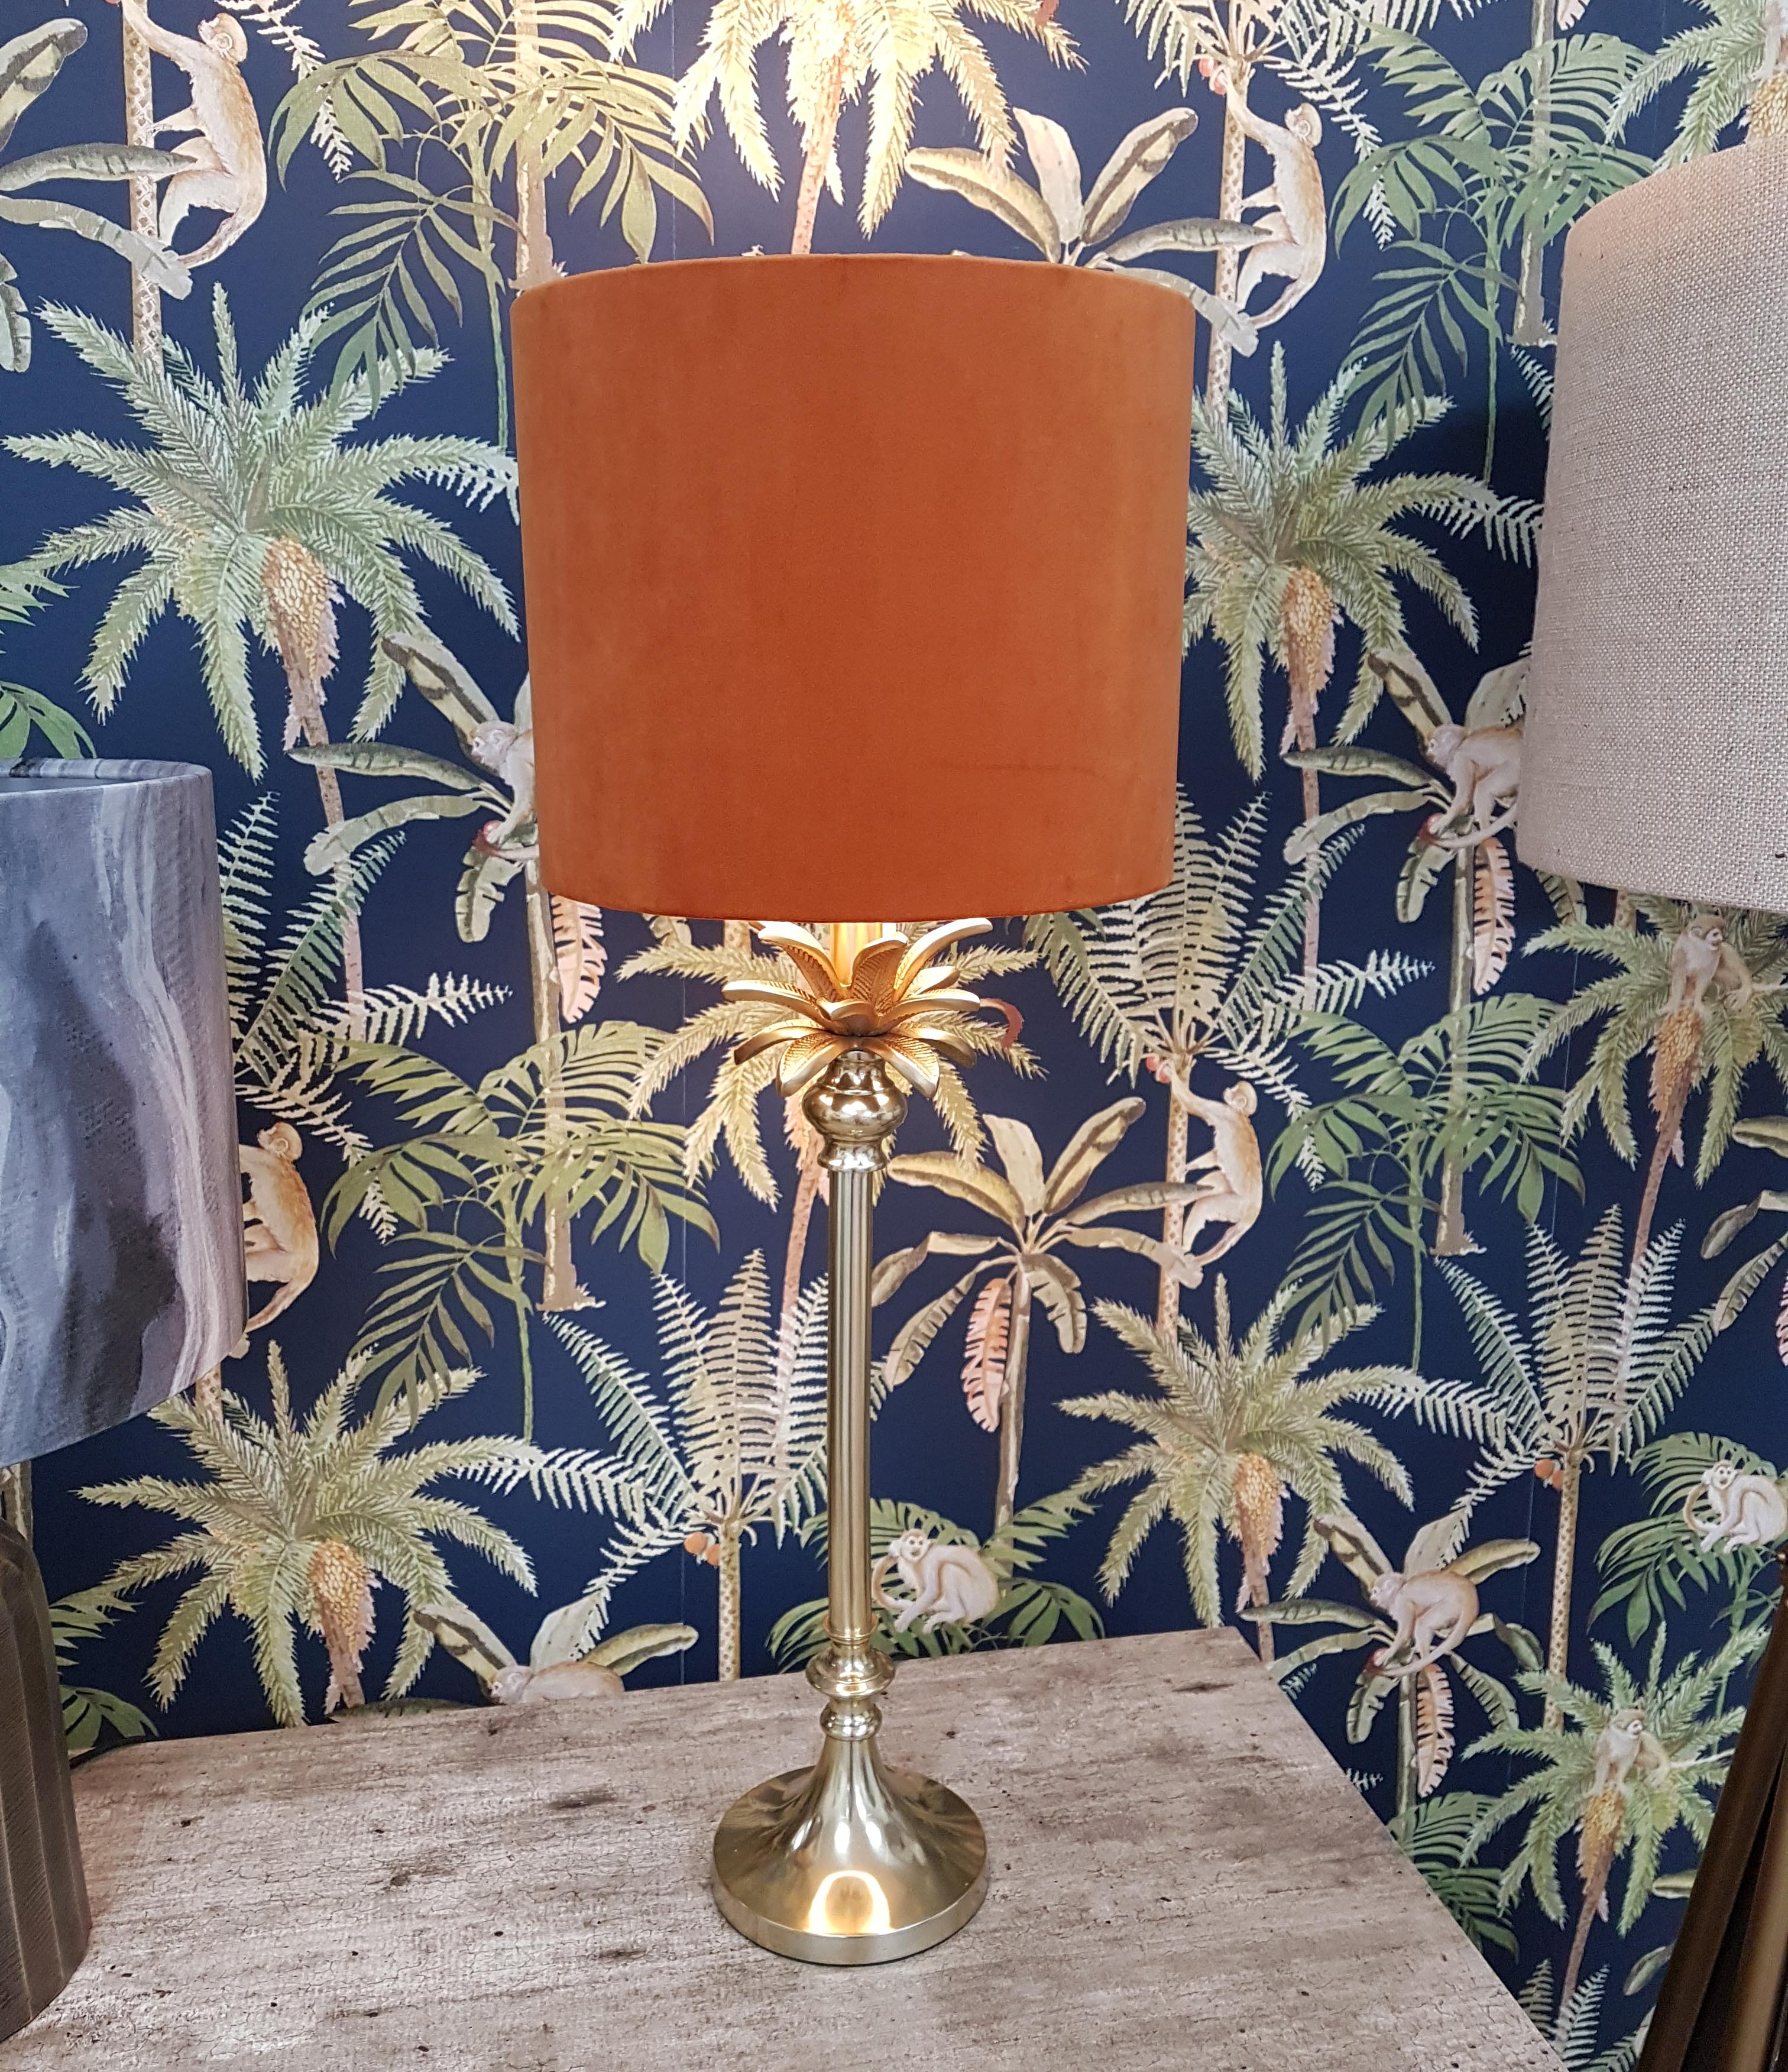 Gold Table Lamp in a Palm Tree Design